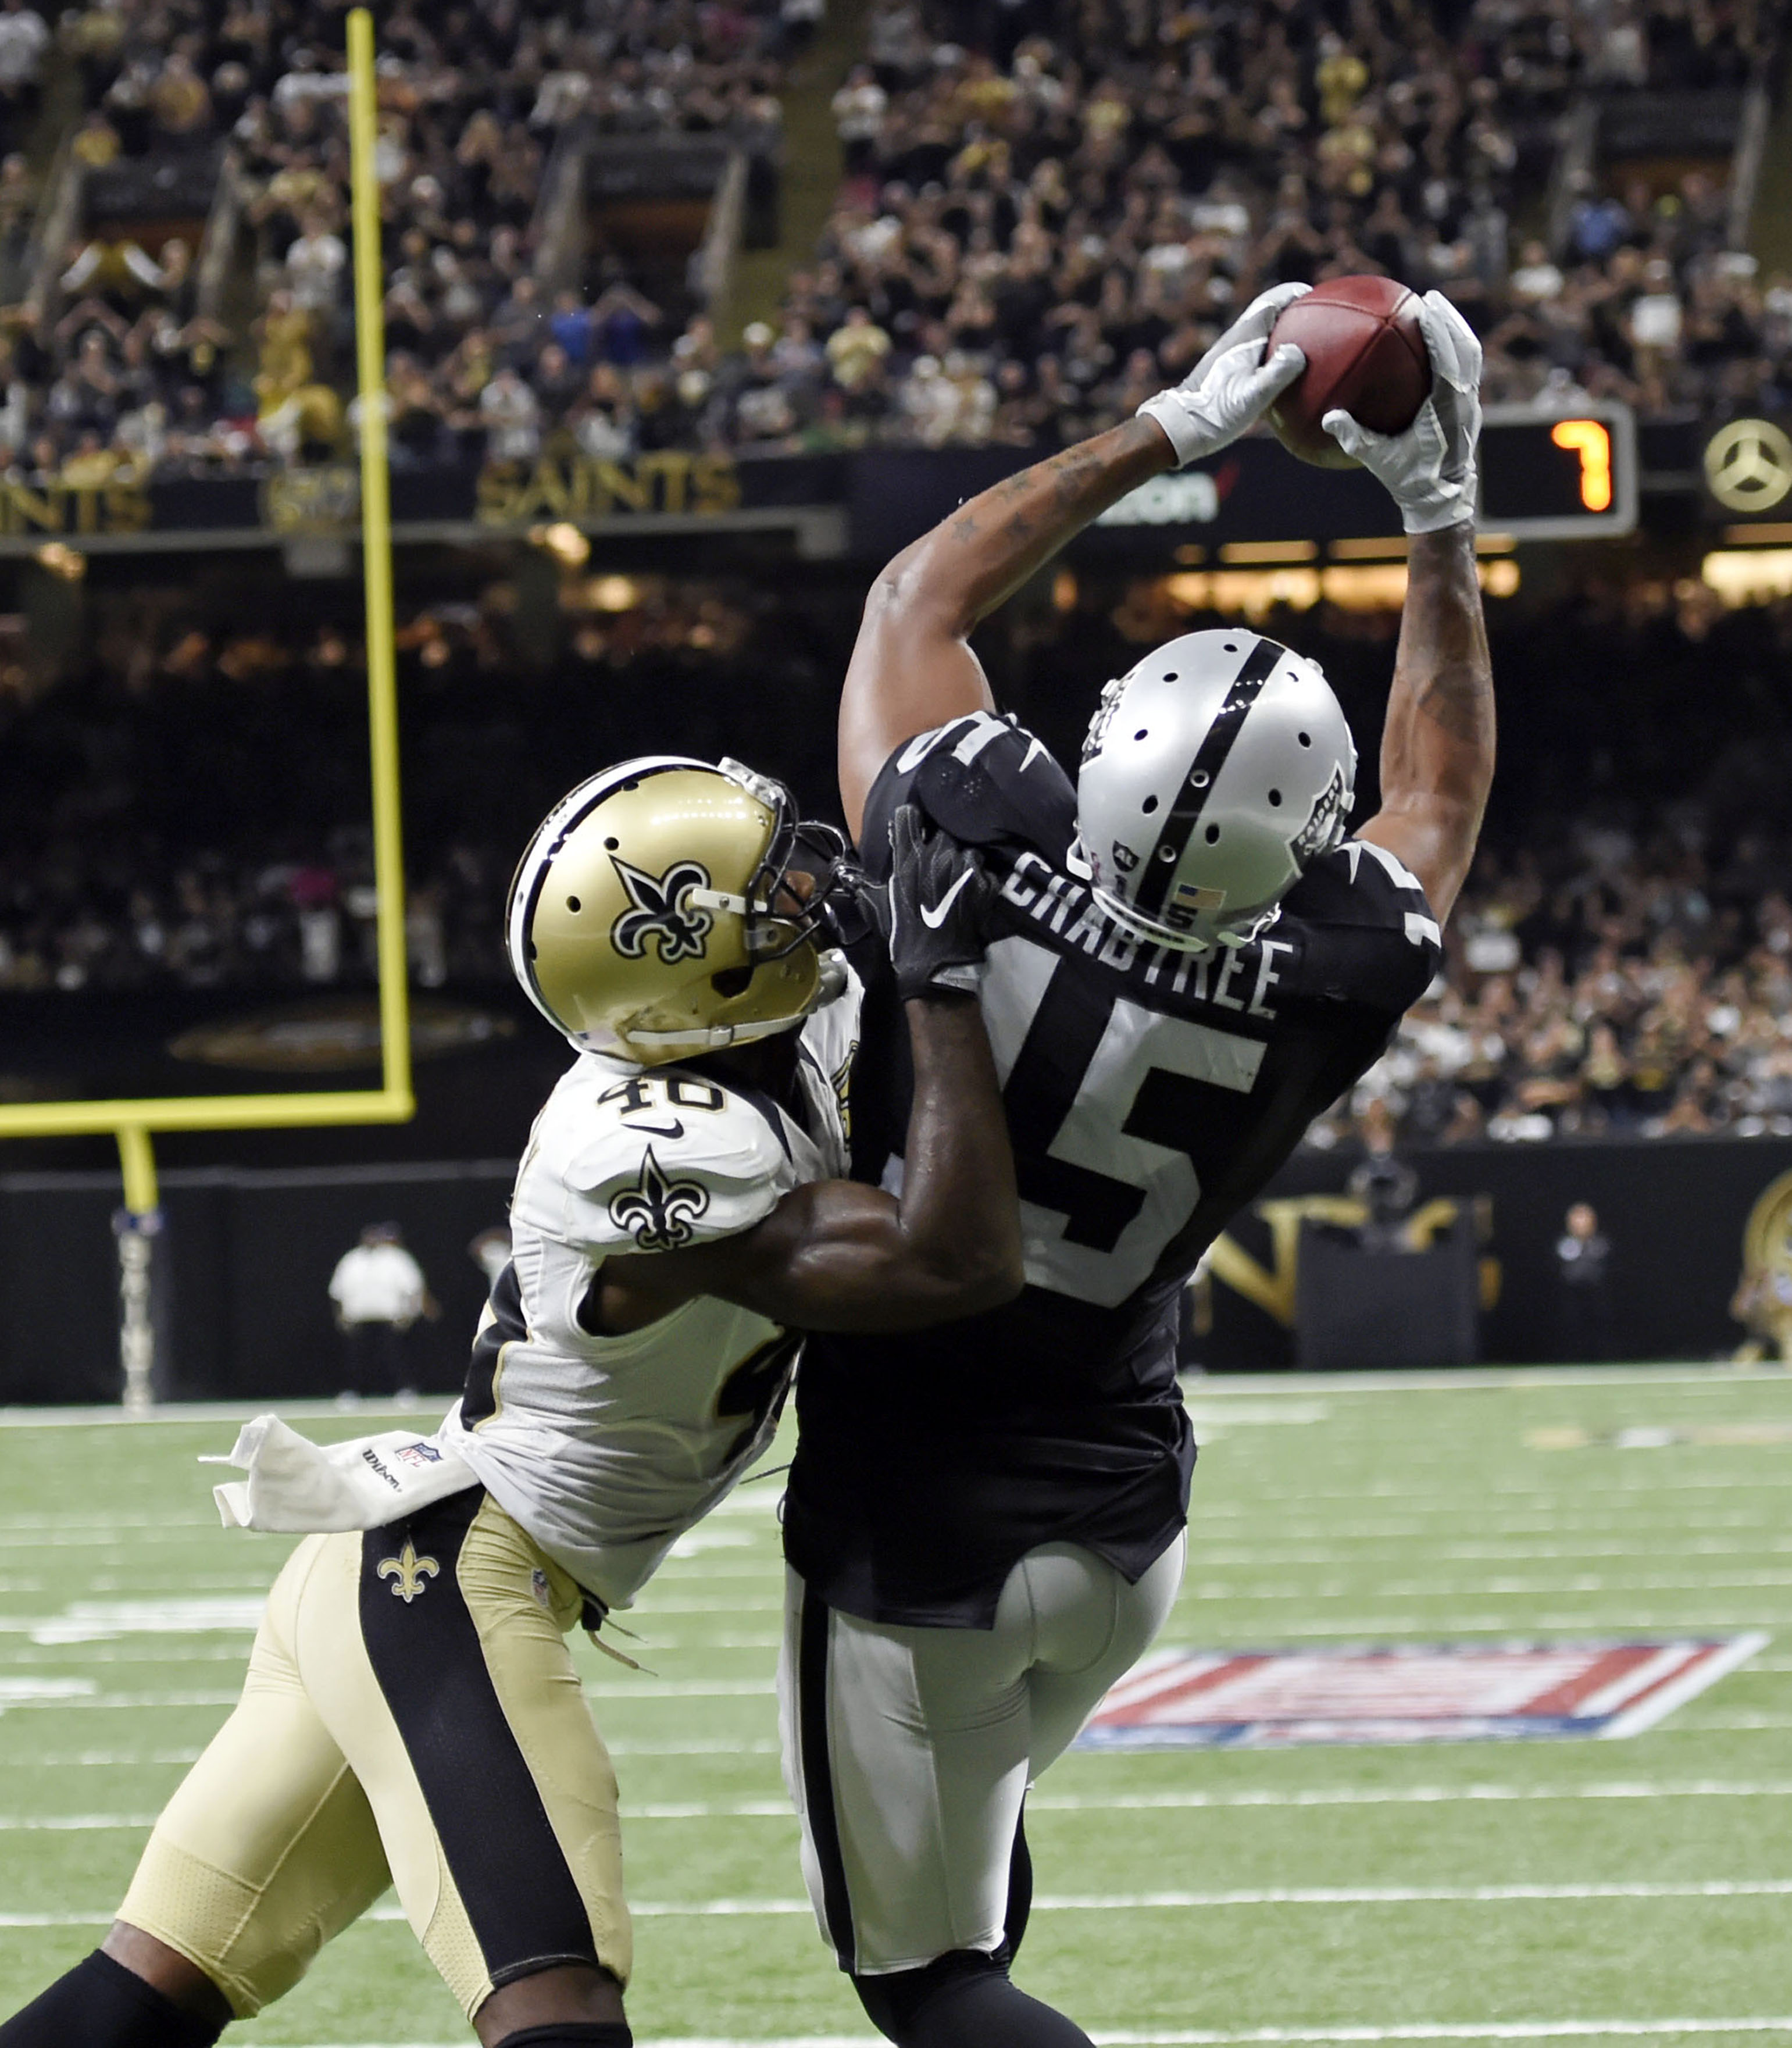 Oakland Raiders wide receiver Michael Crabtree (15) pulls in a touchdown reception over New Orleans Saints cornerback Ken Crawley (46) in the second half of an NFL football game in New Orleans, Sunday, Sept. 11, 2016. (AP Photo/Bill Feig)